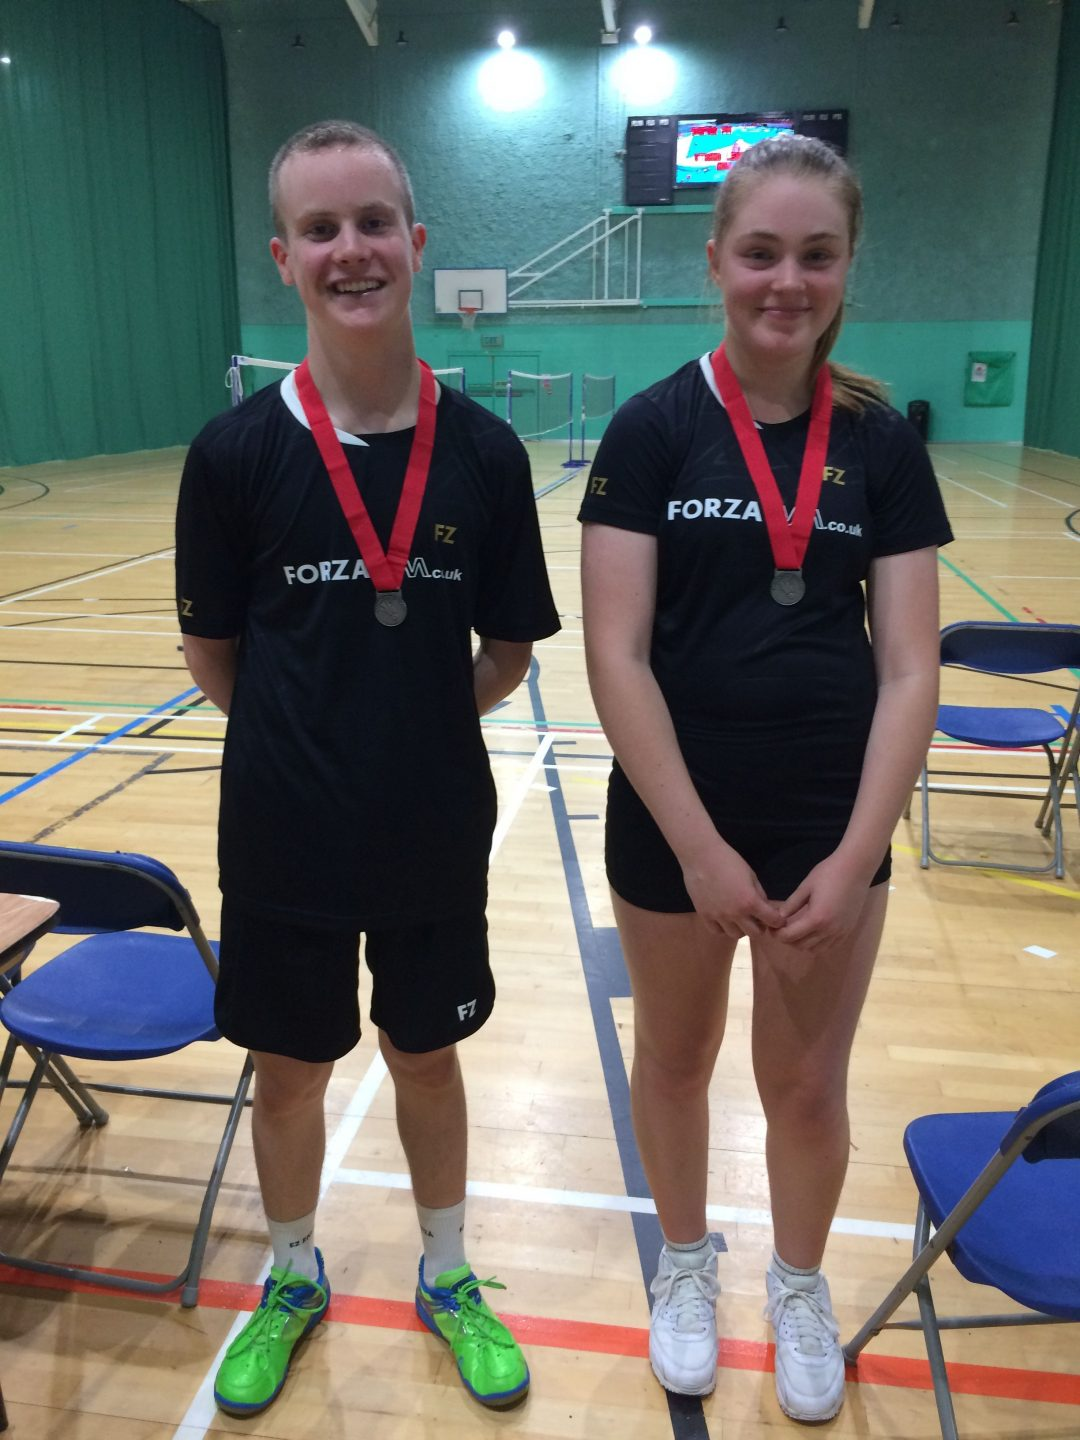 Zak-Ray and his mixed doubles partner, Megan Brierley